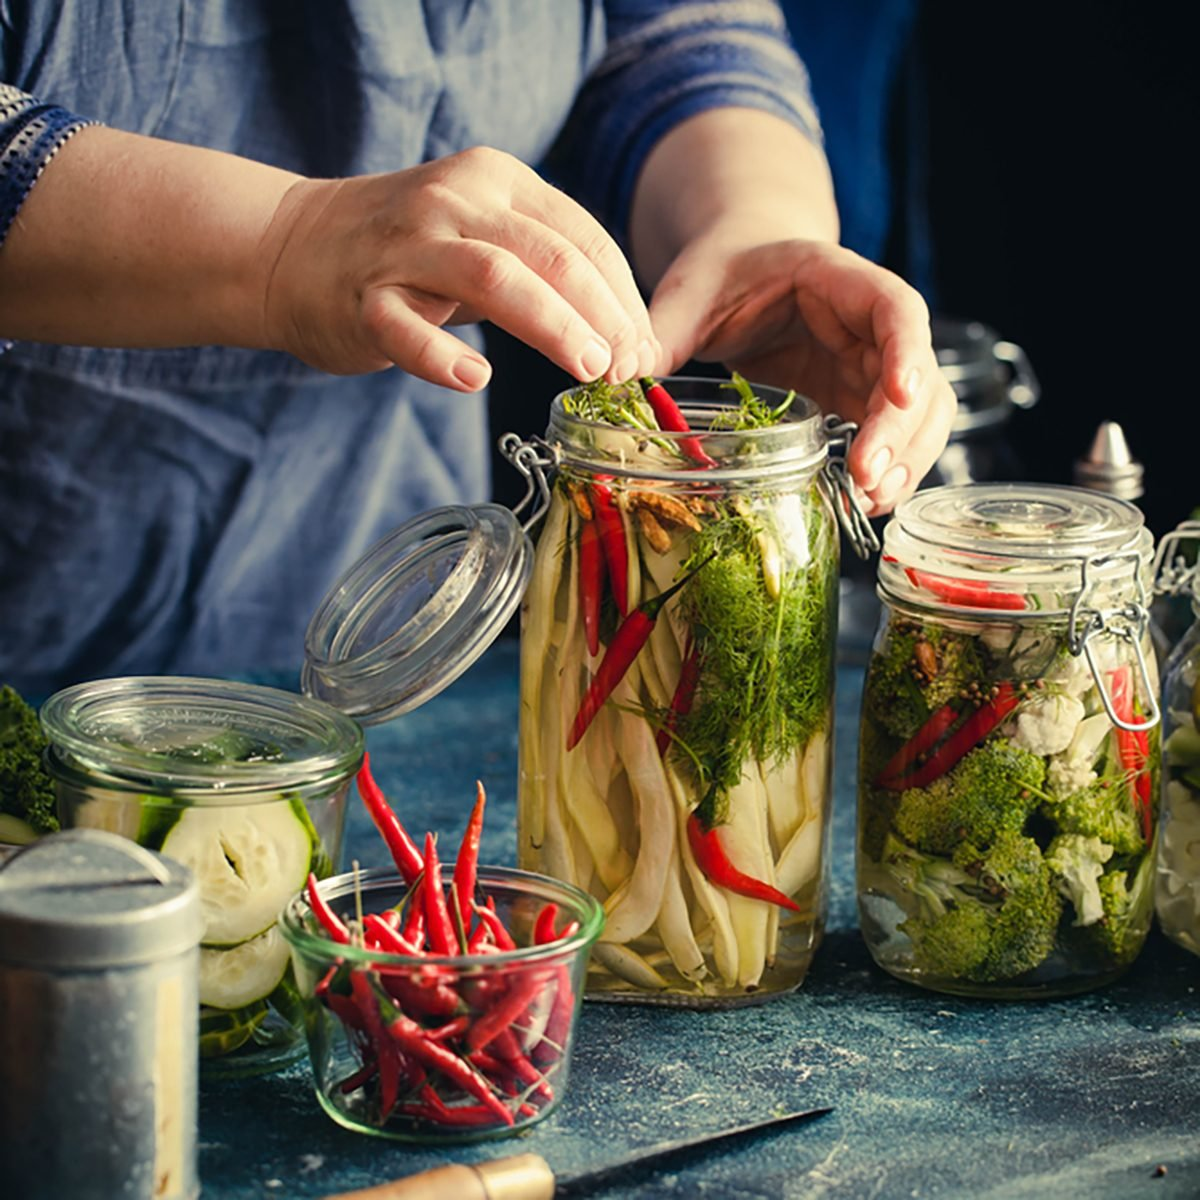 Canning green beans with red hot chili peppers in glass jars with pickled cabbage cauliflower broccoli sour preserved hands add herbs fermented process.